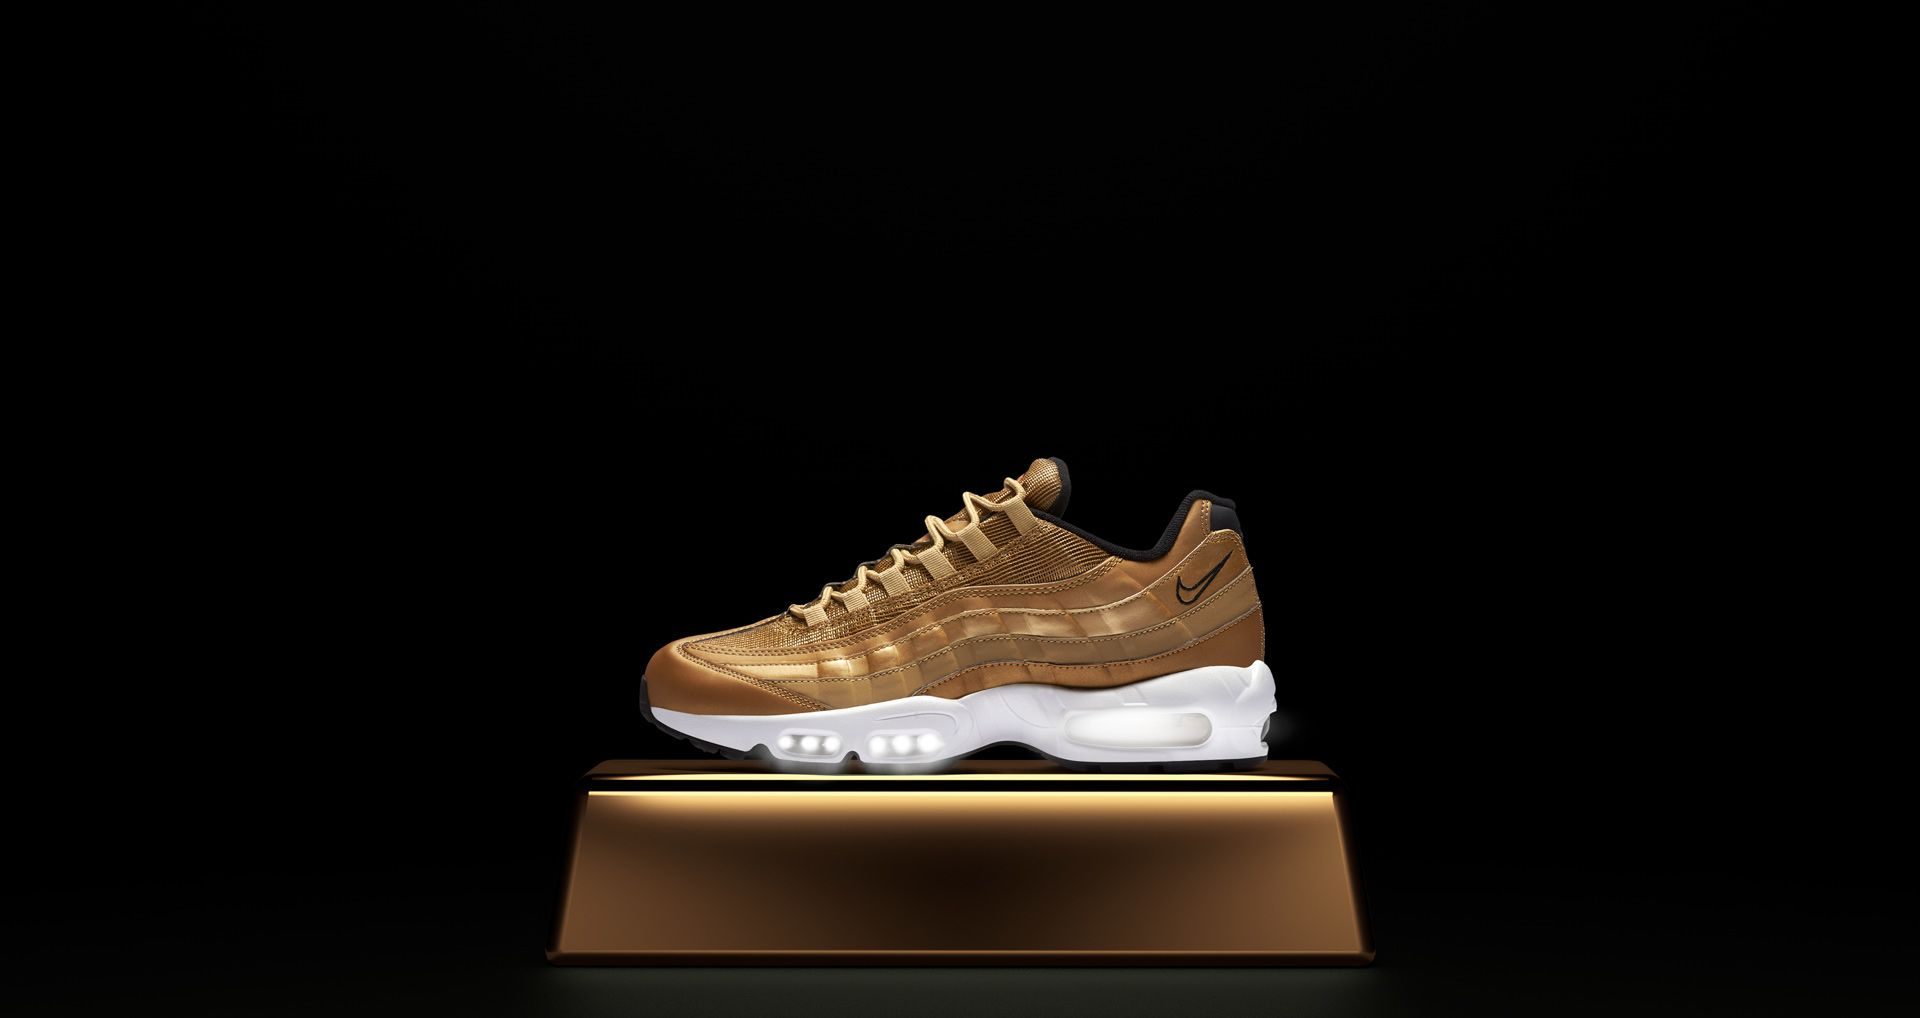 separation shoes 51fa5 a79d7 Nike Air Max 95 Metallic Gold Release Date. Nike⁠+ SNKRS